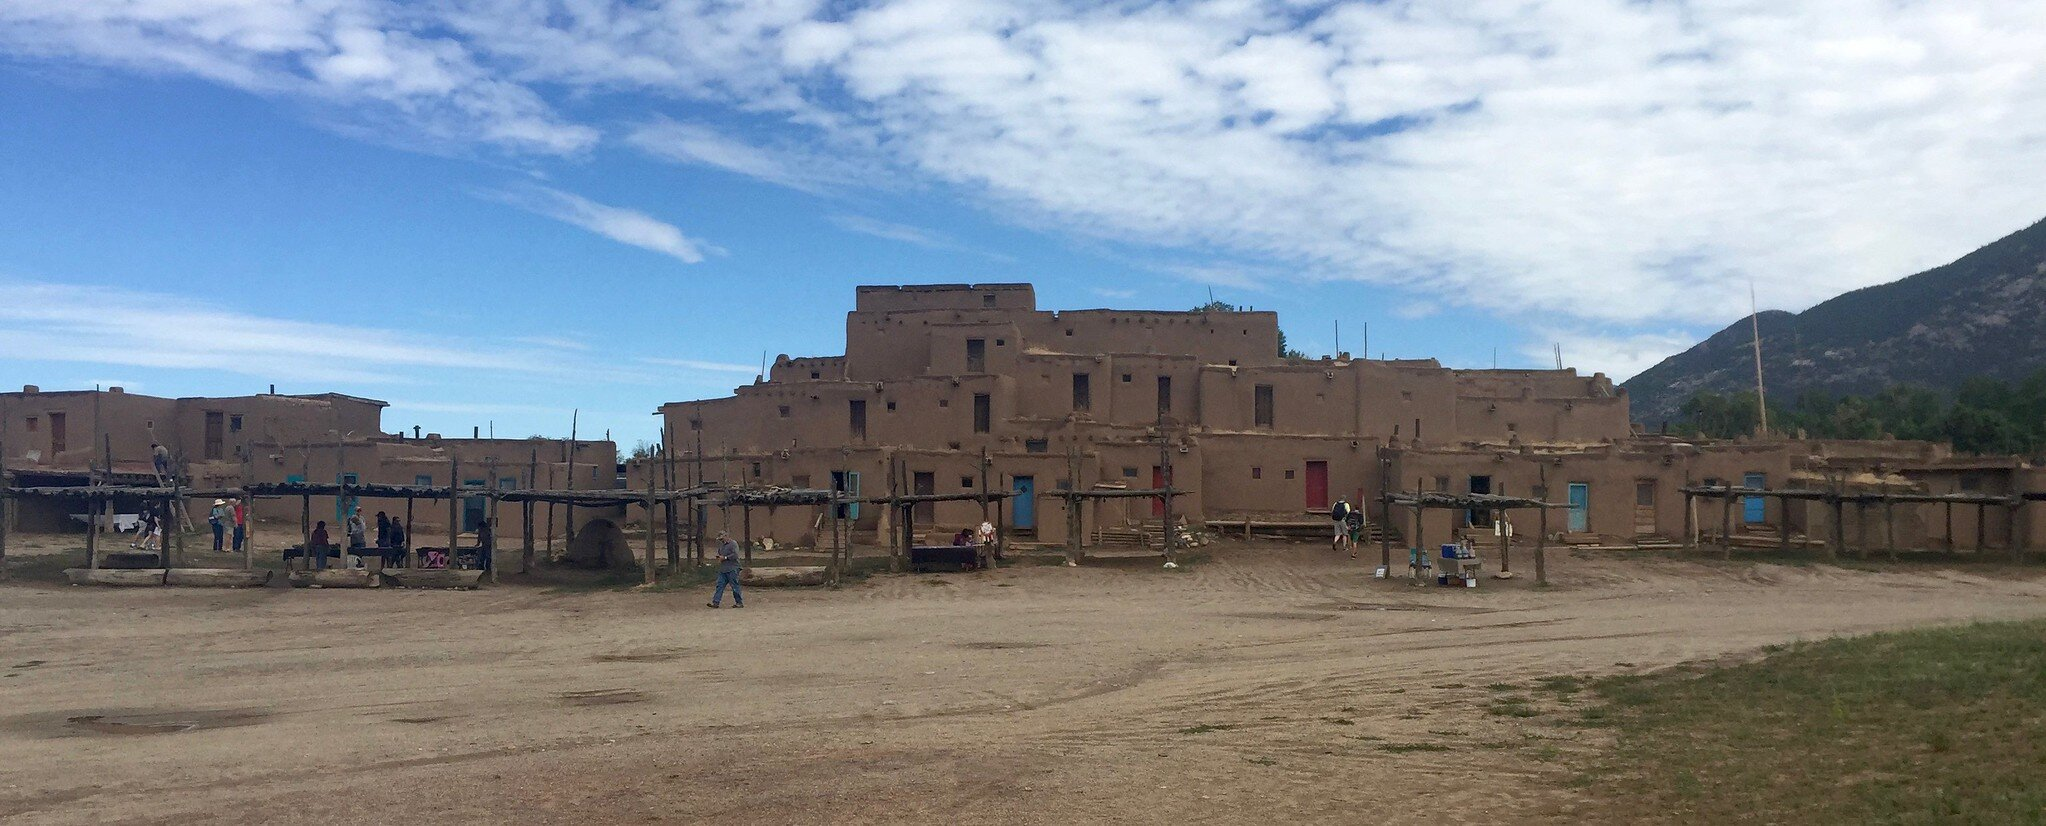 taos pueblo, Taos, NM buildings with sand and mountains